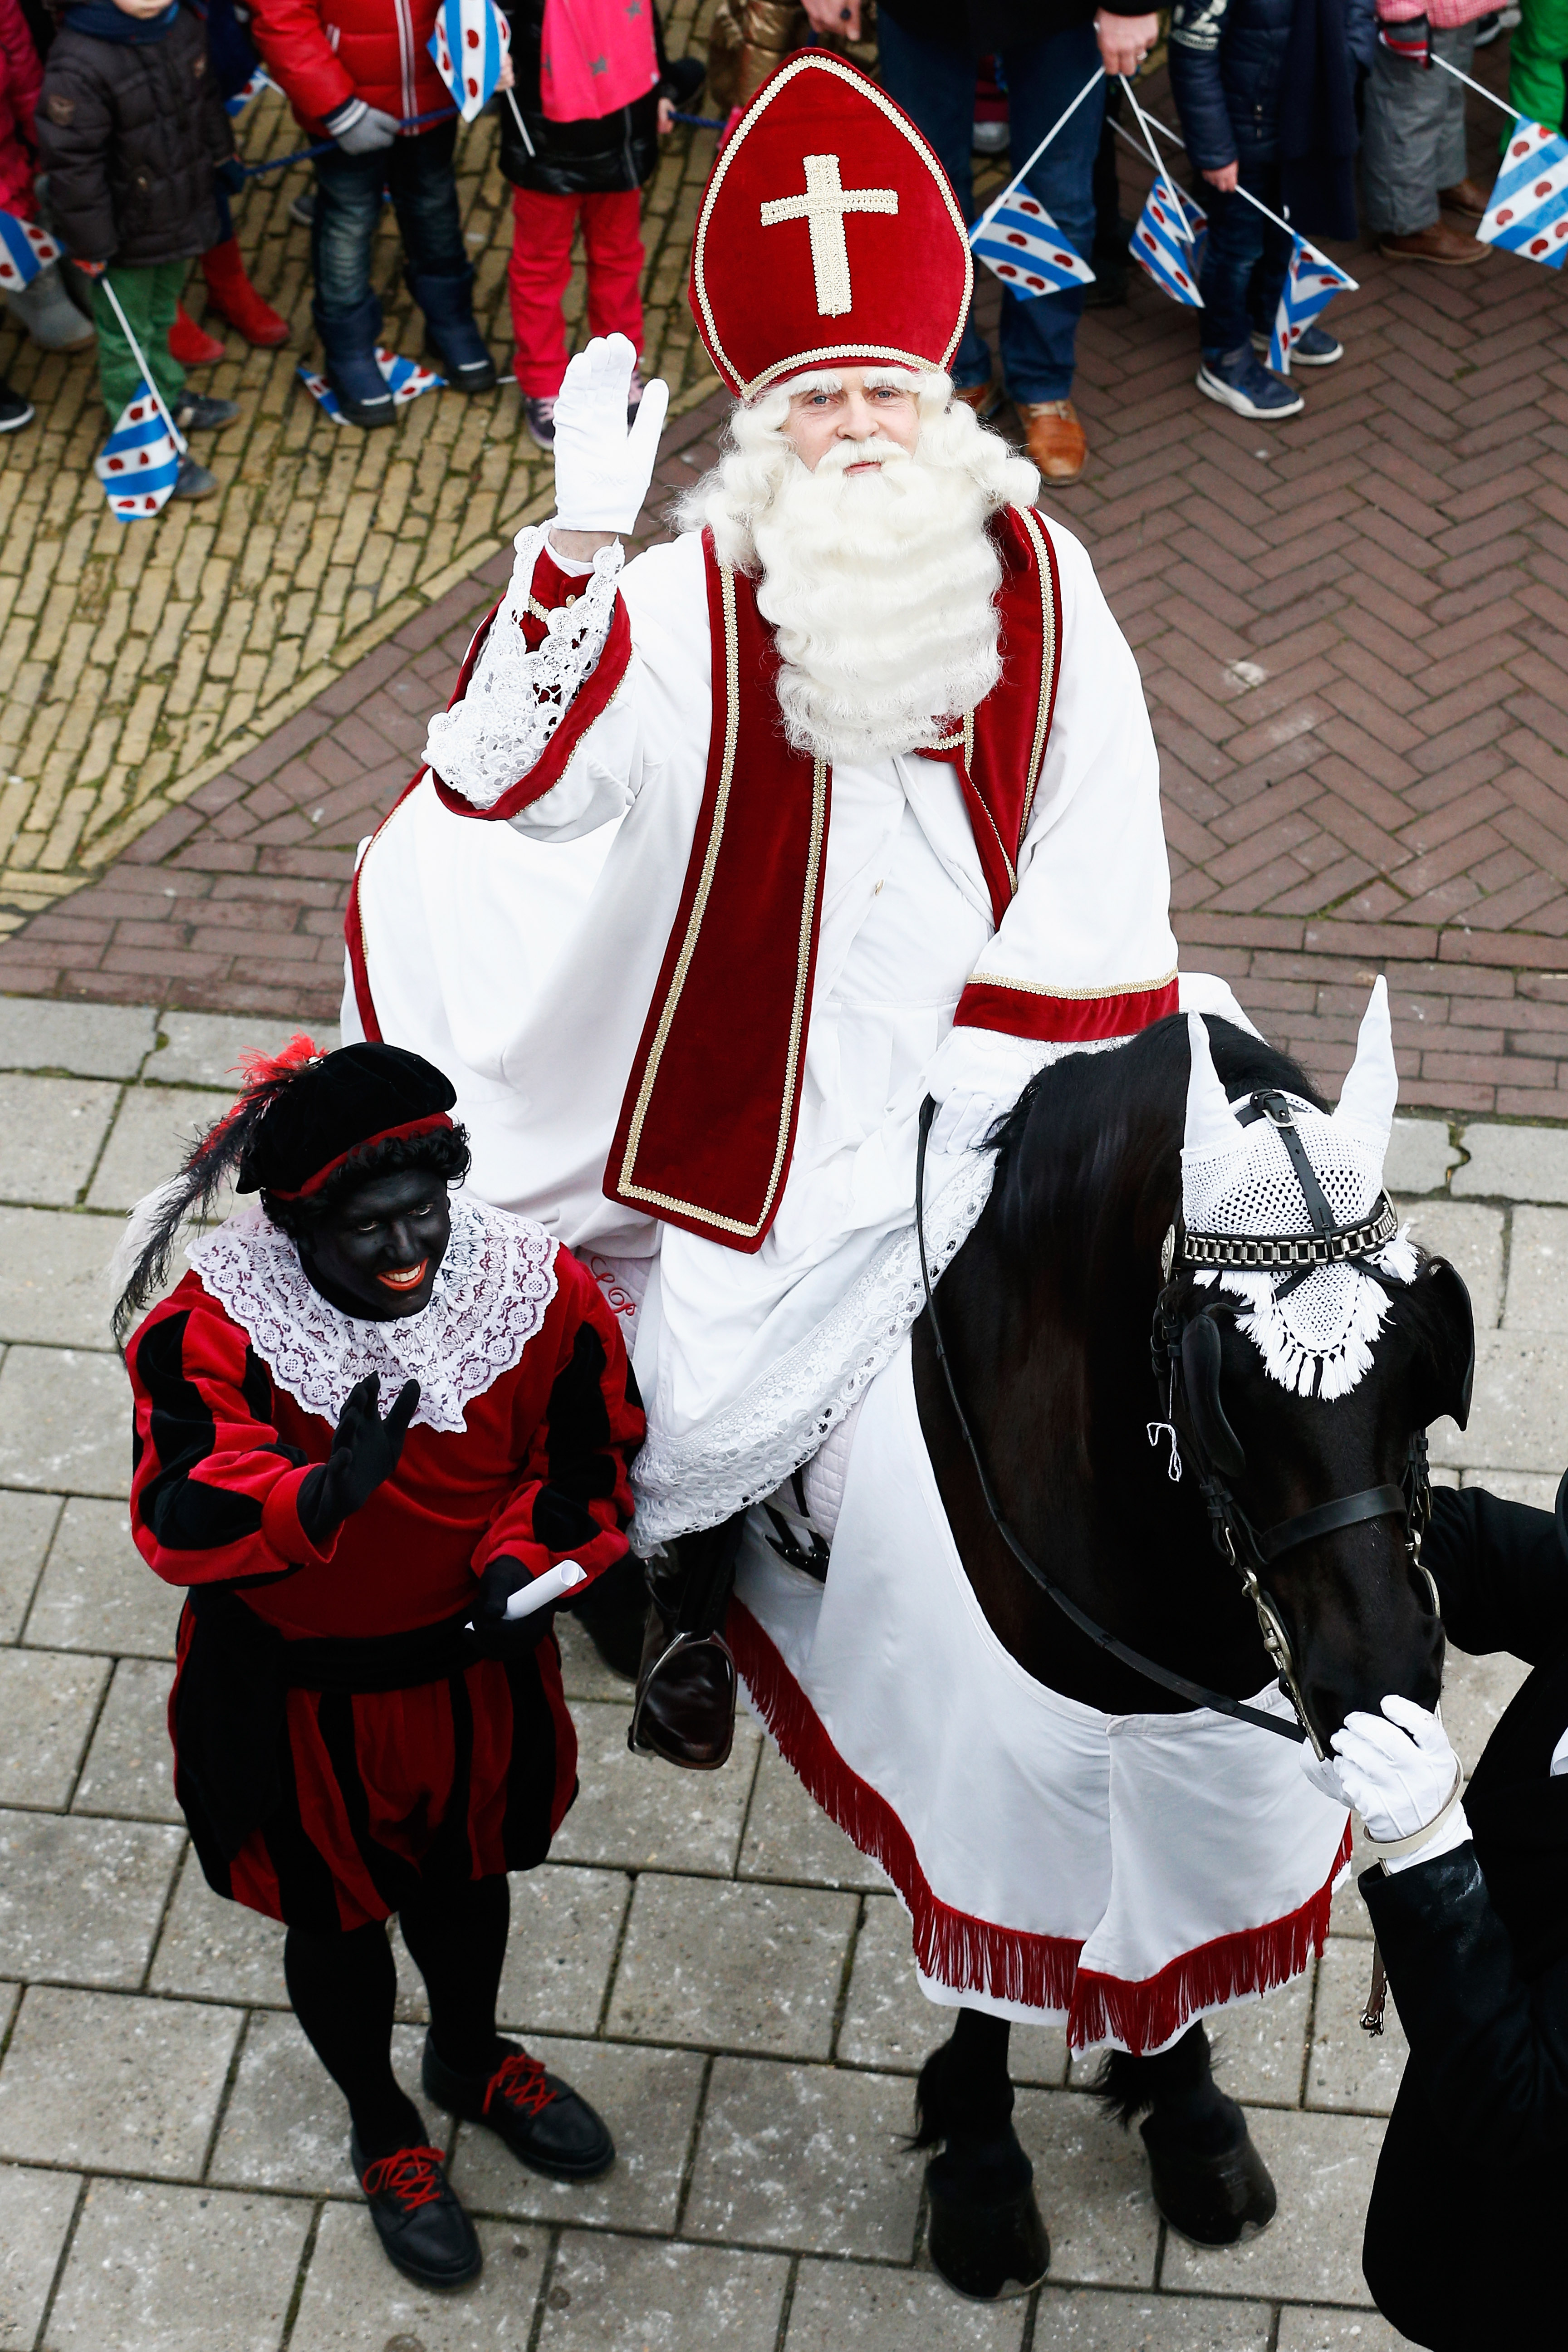 People line the streets near the pier as Sint Piter, named after the patron saint of fishermen Saint Peter, and Zwarte Piet (or Black Pete) arrive on February 14, 2015 in Grou, Netherlands.